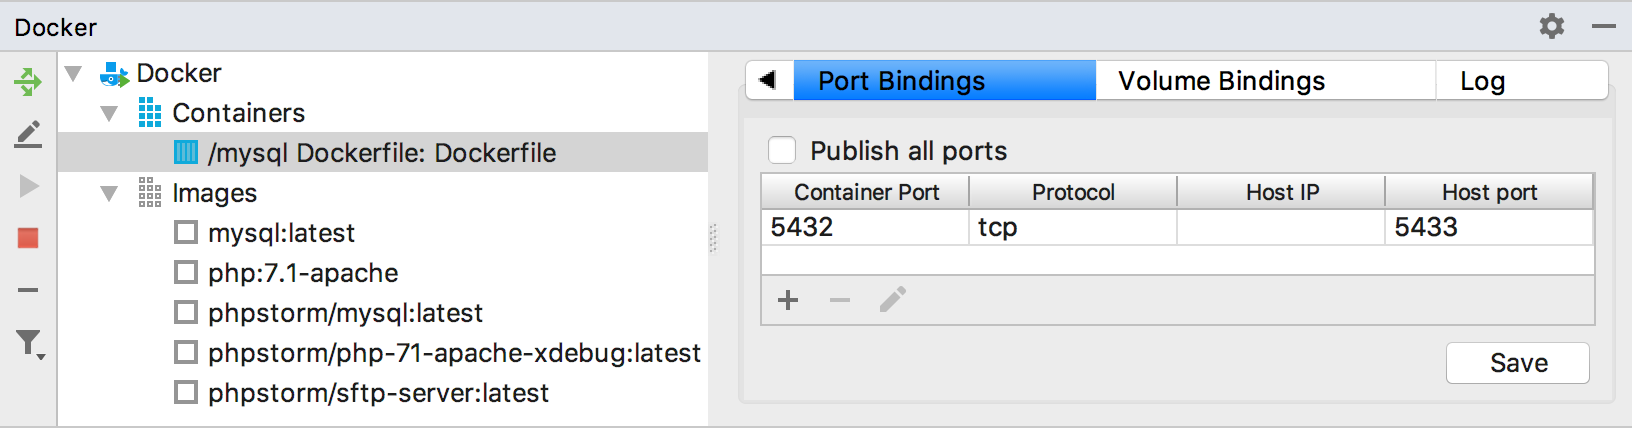 The Port Bindings tab